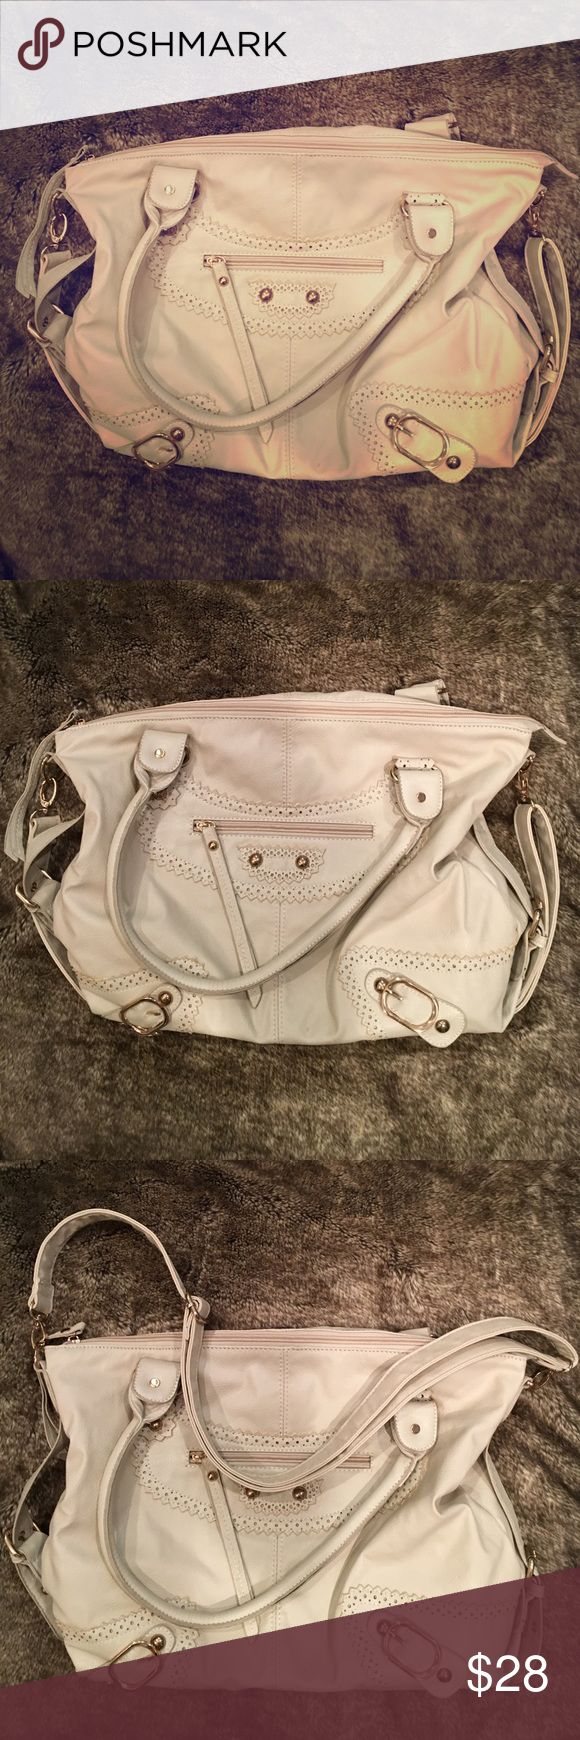 Cream & Stitch Faux Leather Adjustable Handbag Used - W/O tags. My sister got this item awhile back and used the bag for only a few hours ONE DAY. Item looks AMAZING, only issue I see is two teeny tiny marks that you can see in some of the last photos. Used and worn ONCE if that - in excellent condition! Price negotiable. Just offer! NOTE: brand IS NOT Nordstrom. Not sure what the brand is, but I do know the item was purchased at a Nordstrom Rack. Nordstrom Bags Backpacks